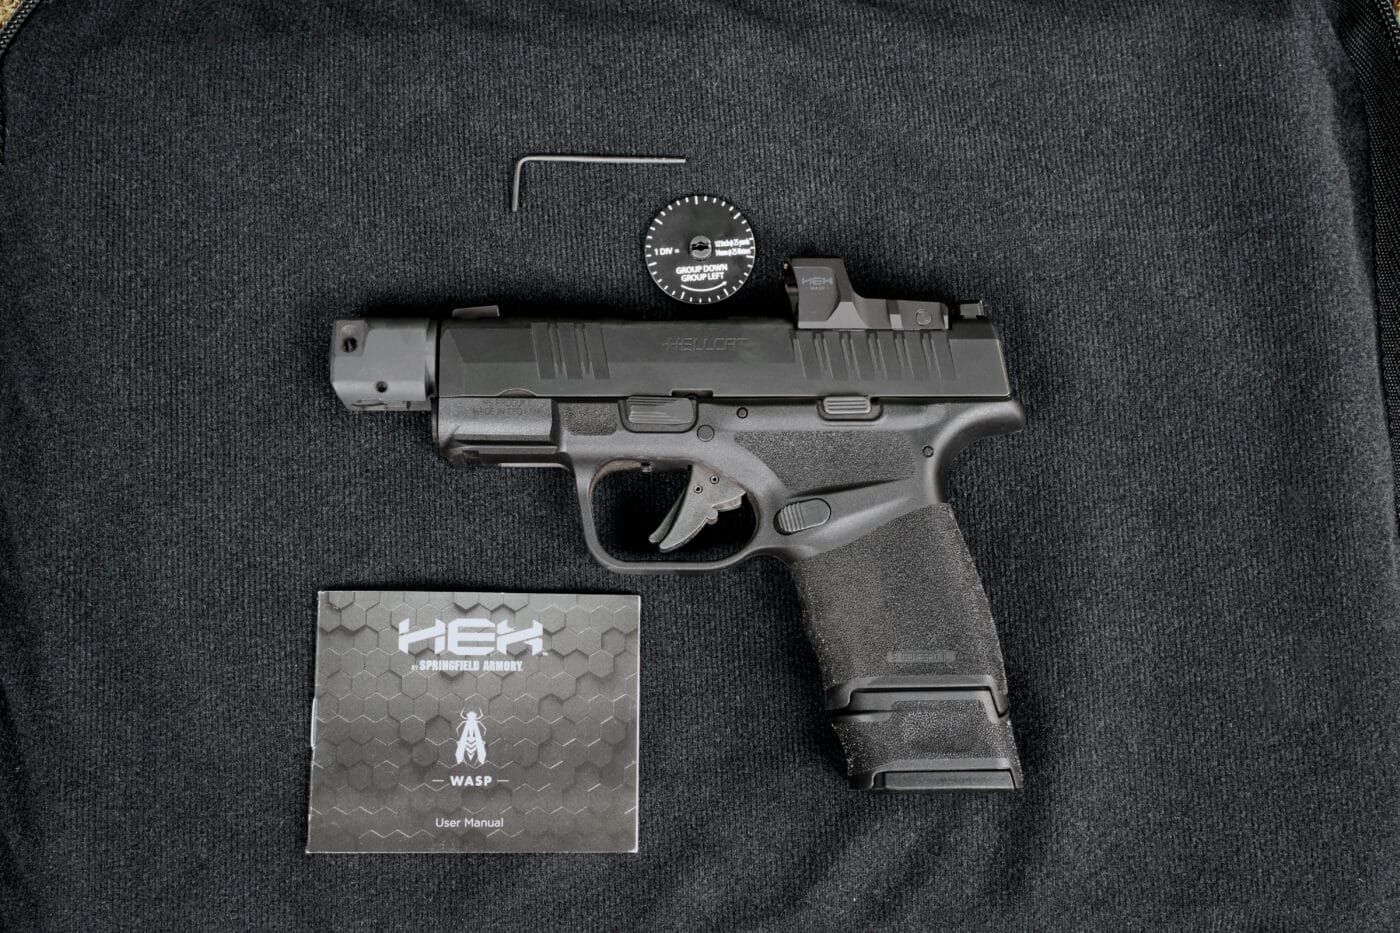 HEX Wasp micro red dot sight on Hellcat RDP pistol with tools to mount it